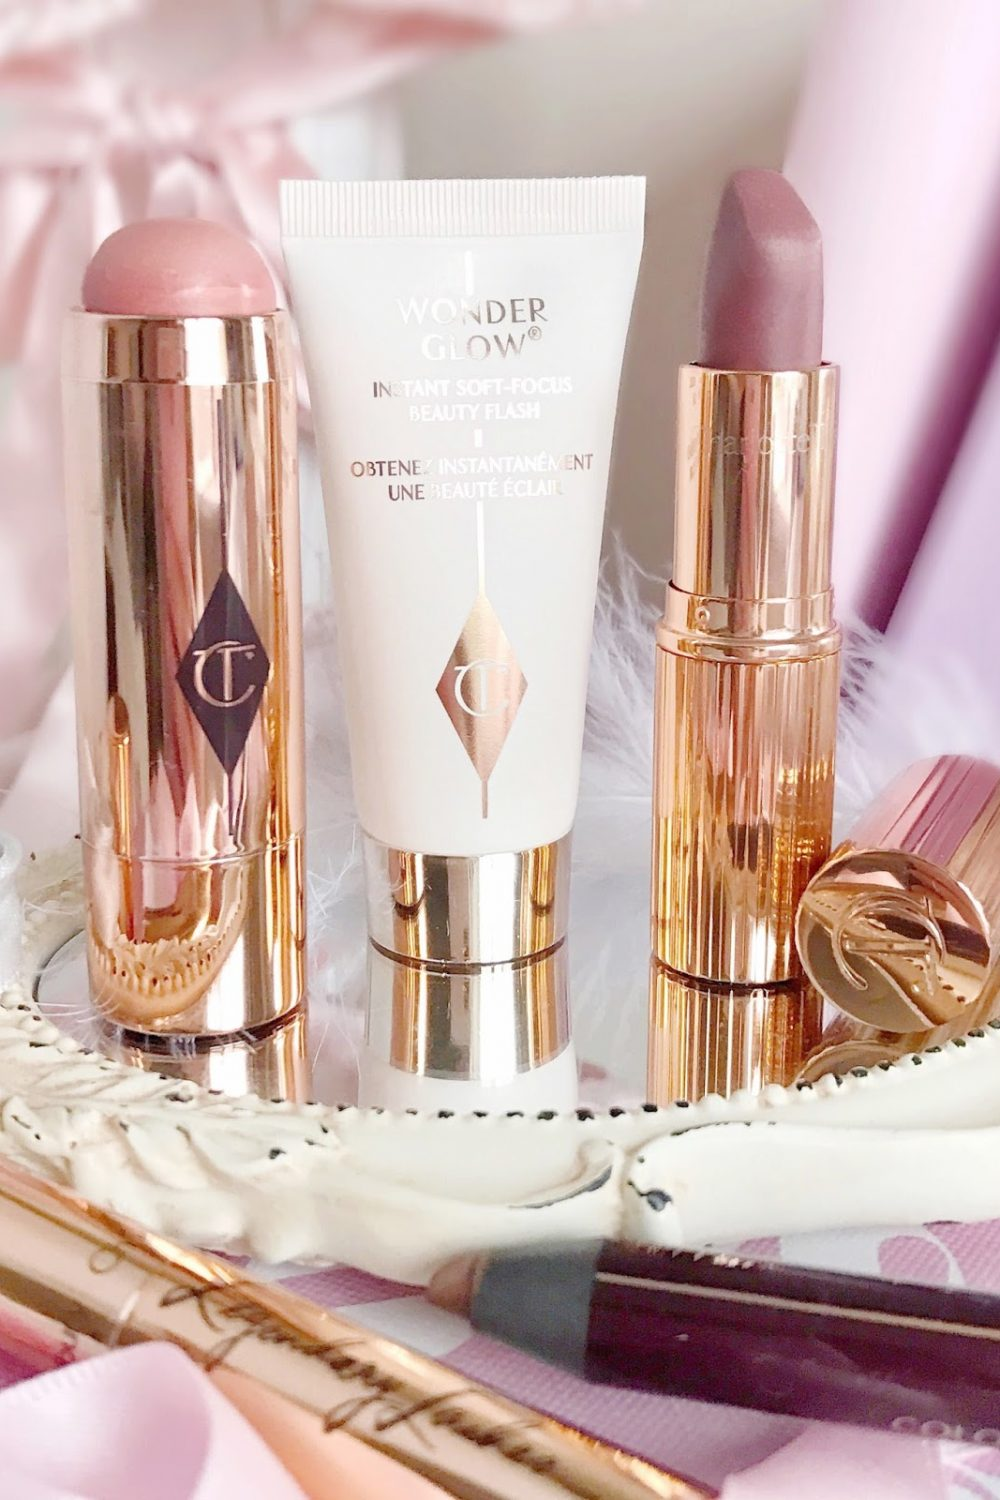 Charlotte Tilbury Quick 'N' Easy Makeup Kit